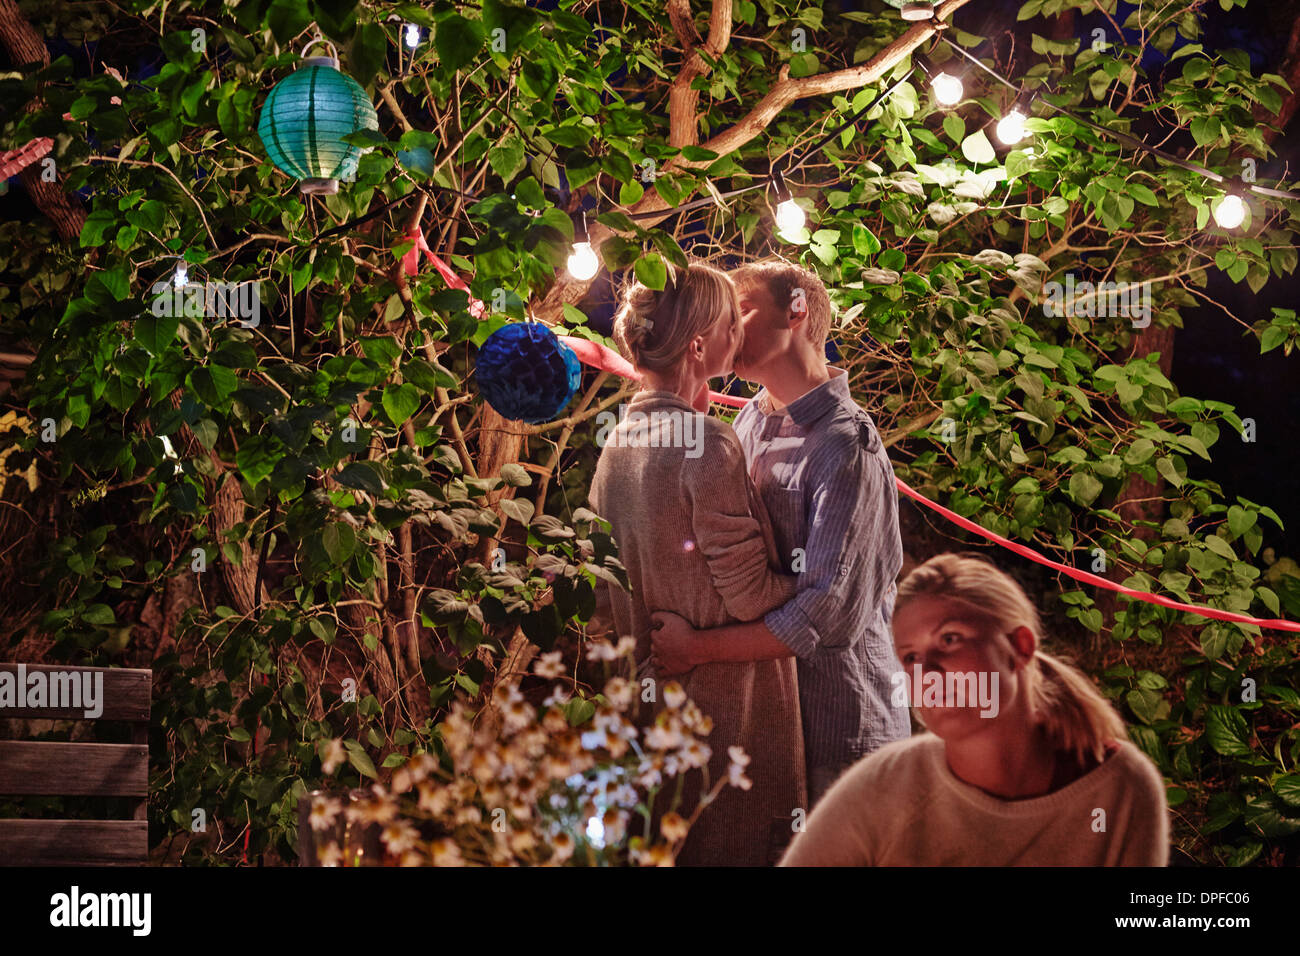 Young couple at garden party at night Photo Stock